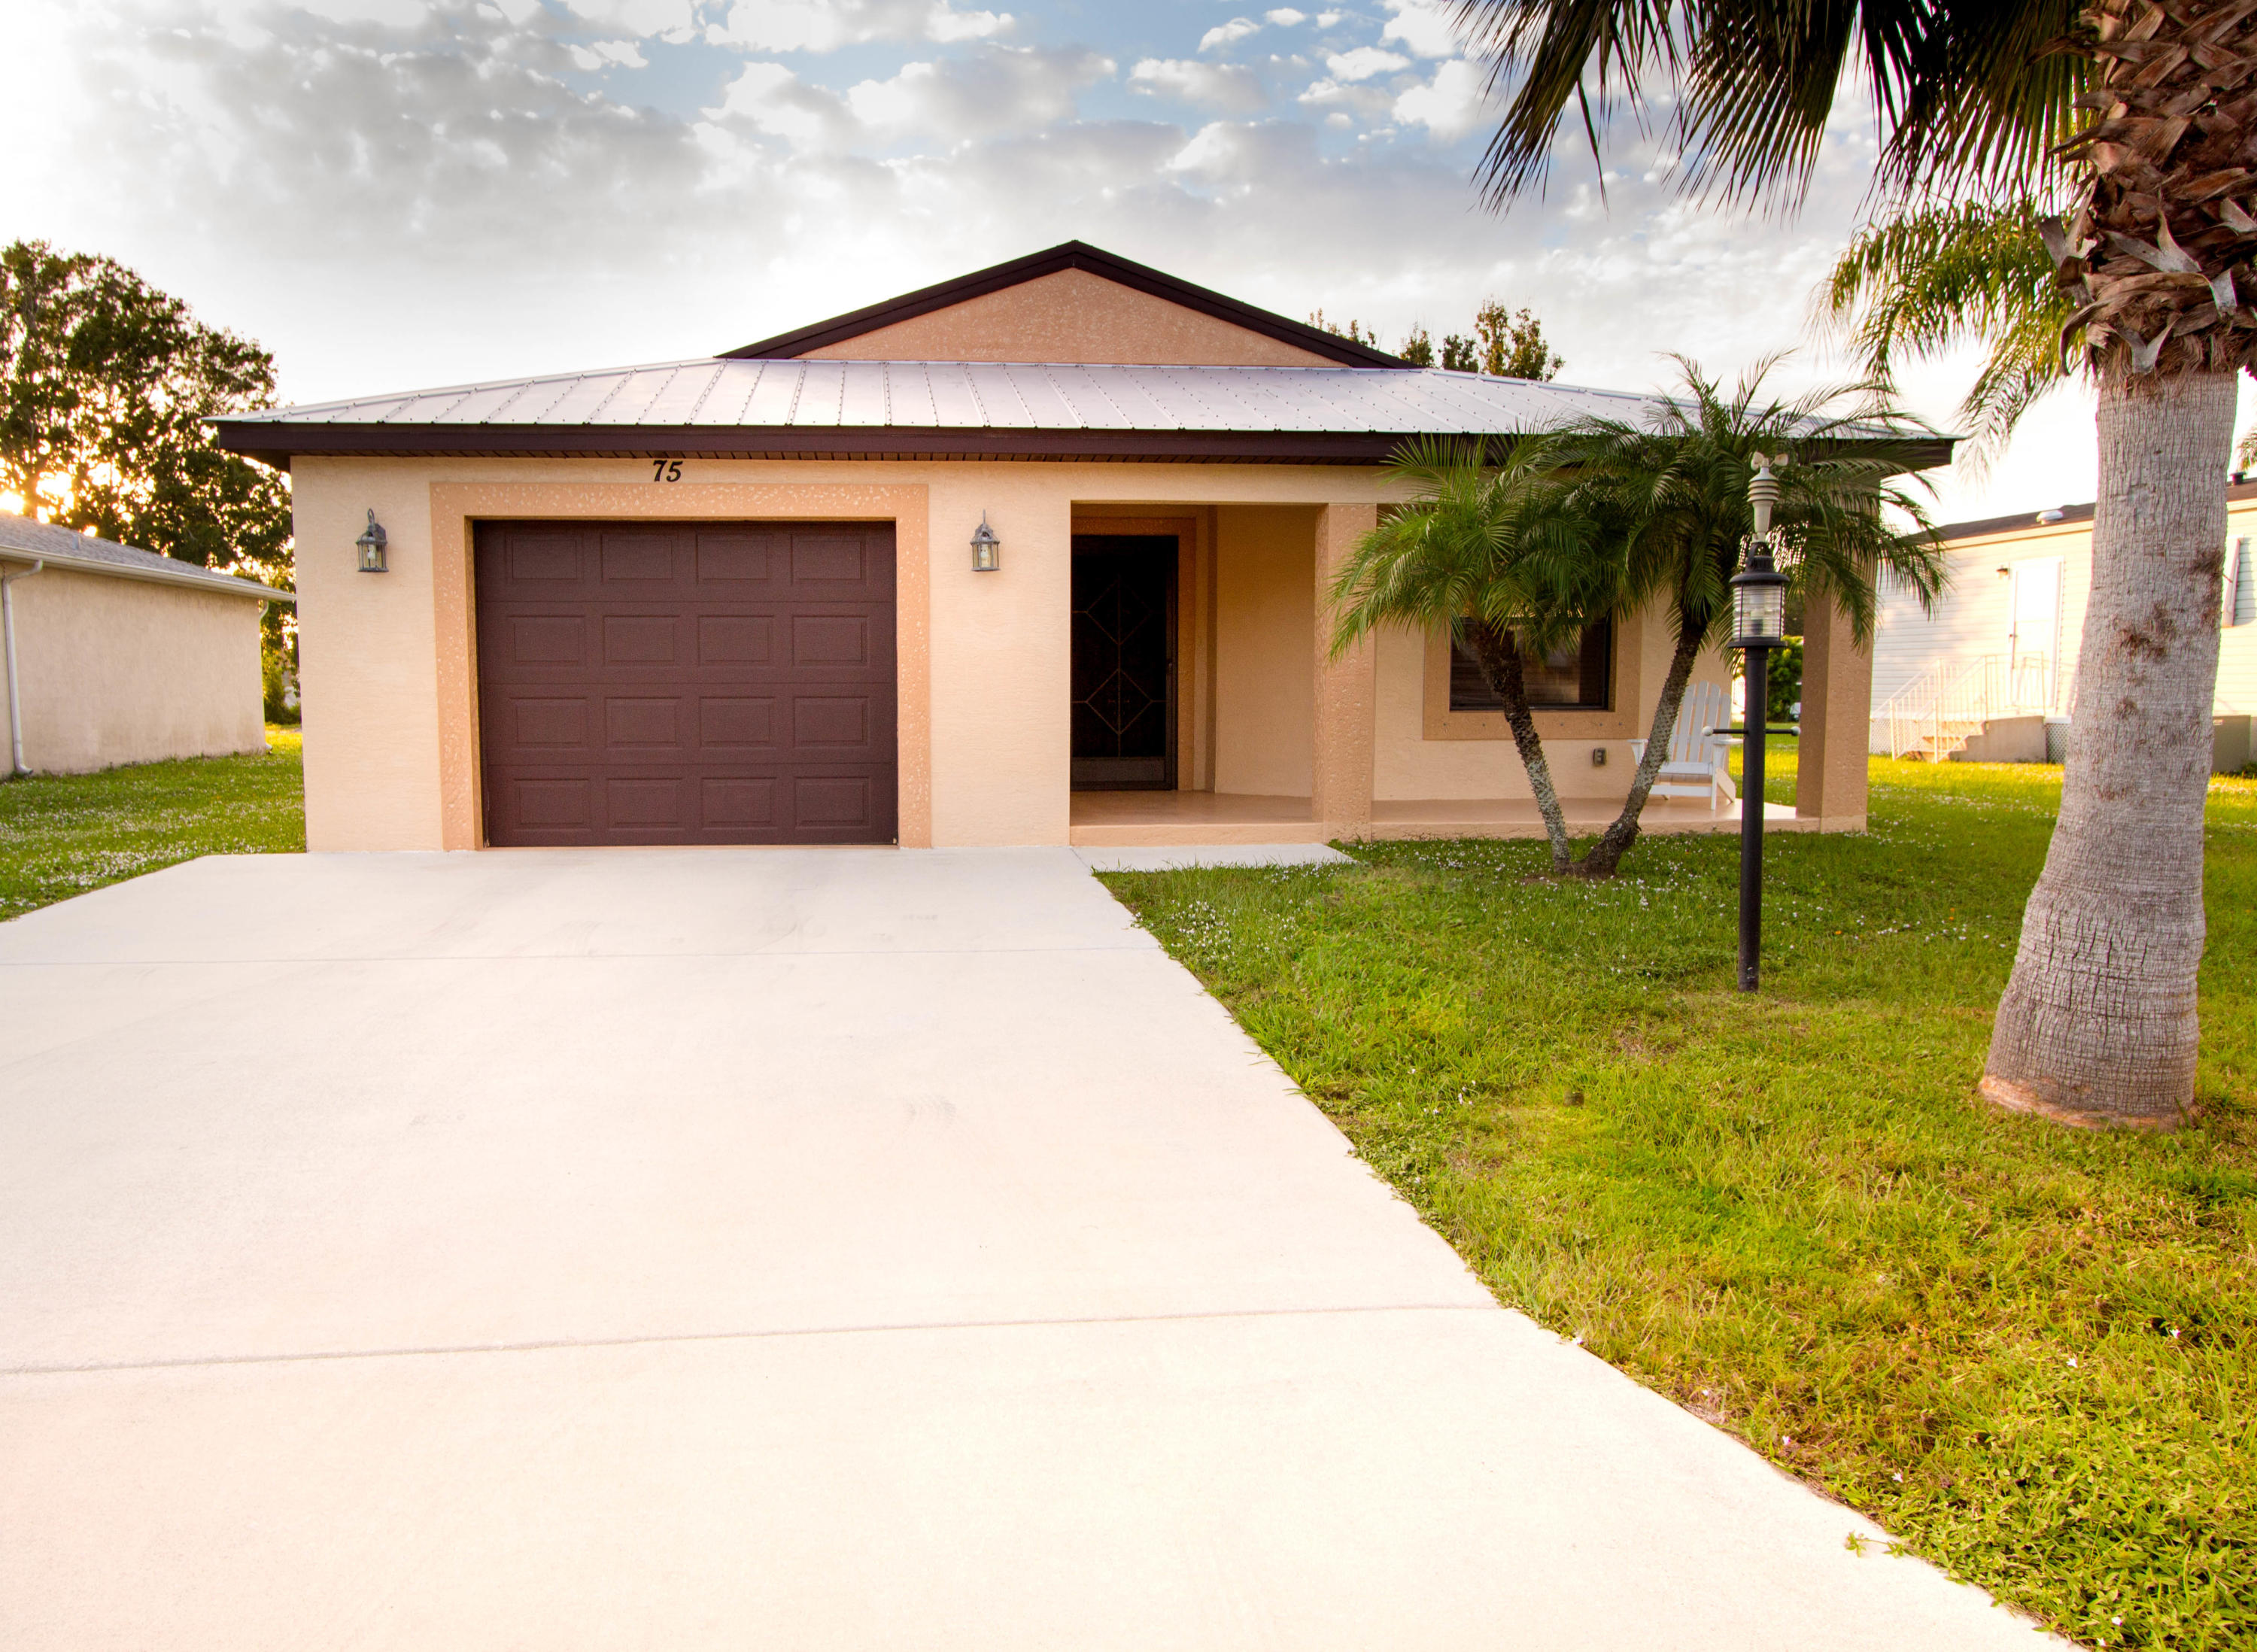 75 Golf Drive - Port St Lucie, Florida